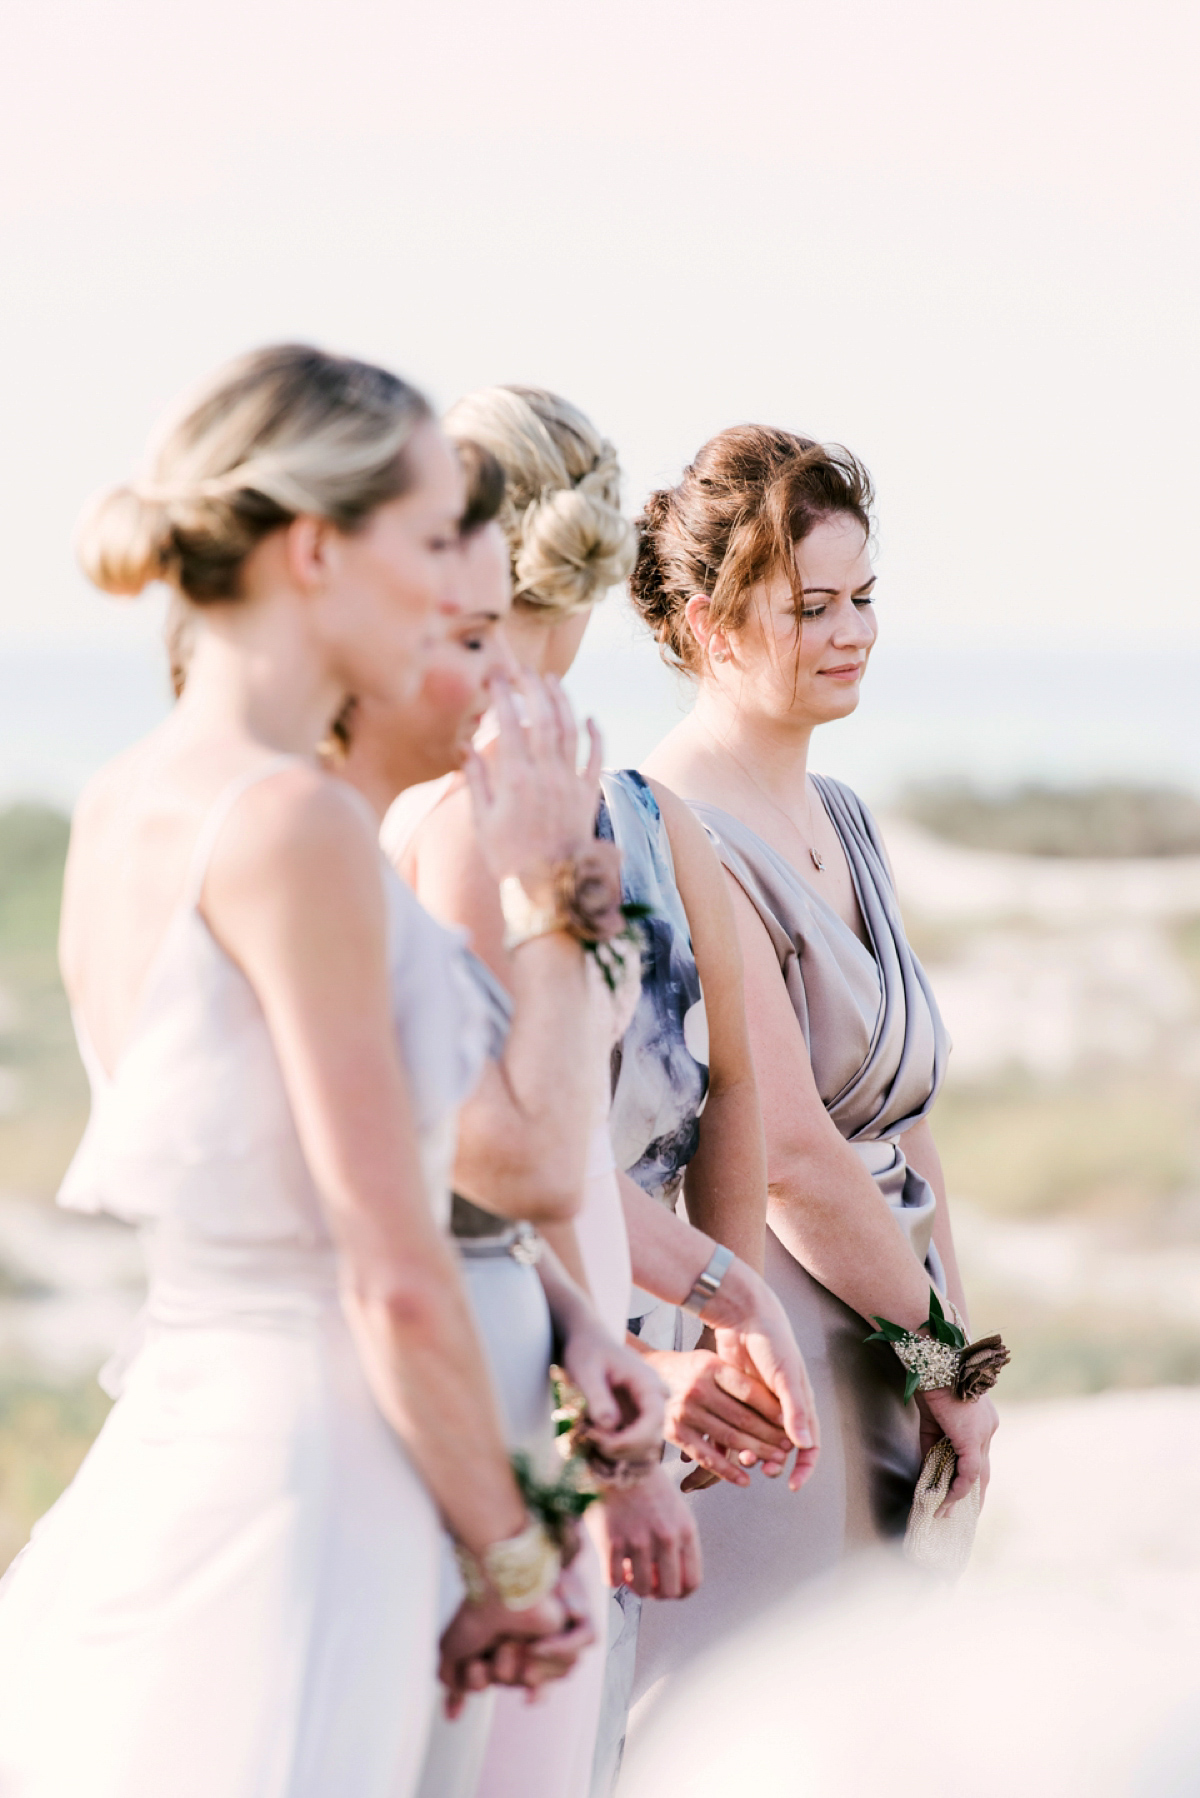 A House Of Moirai Dress For A Stylish Boho Wedding In Abu Dhabi